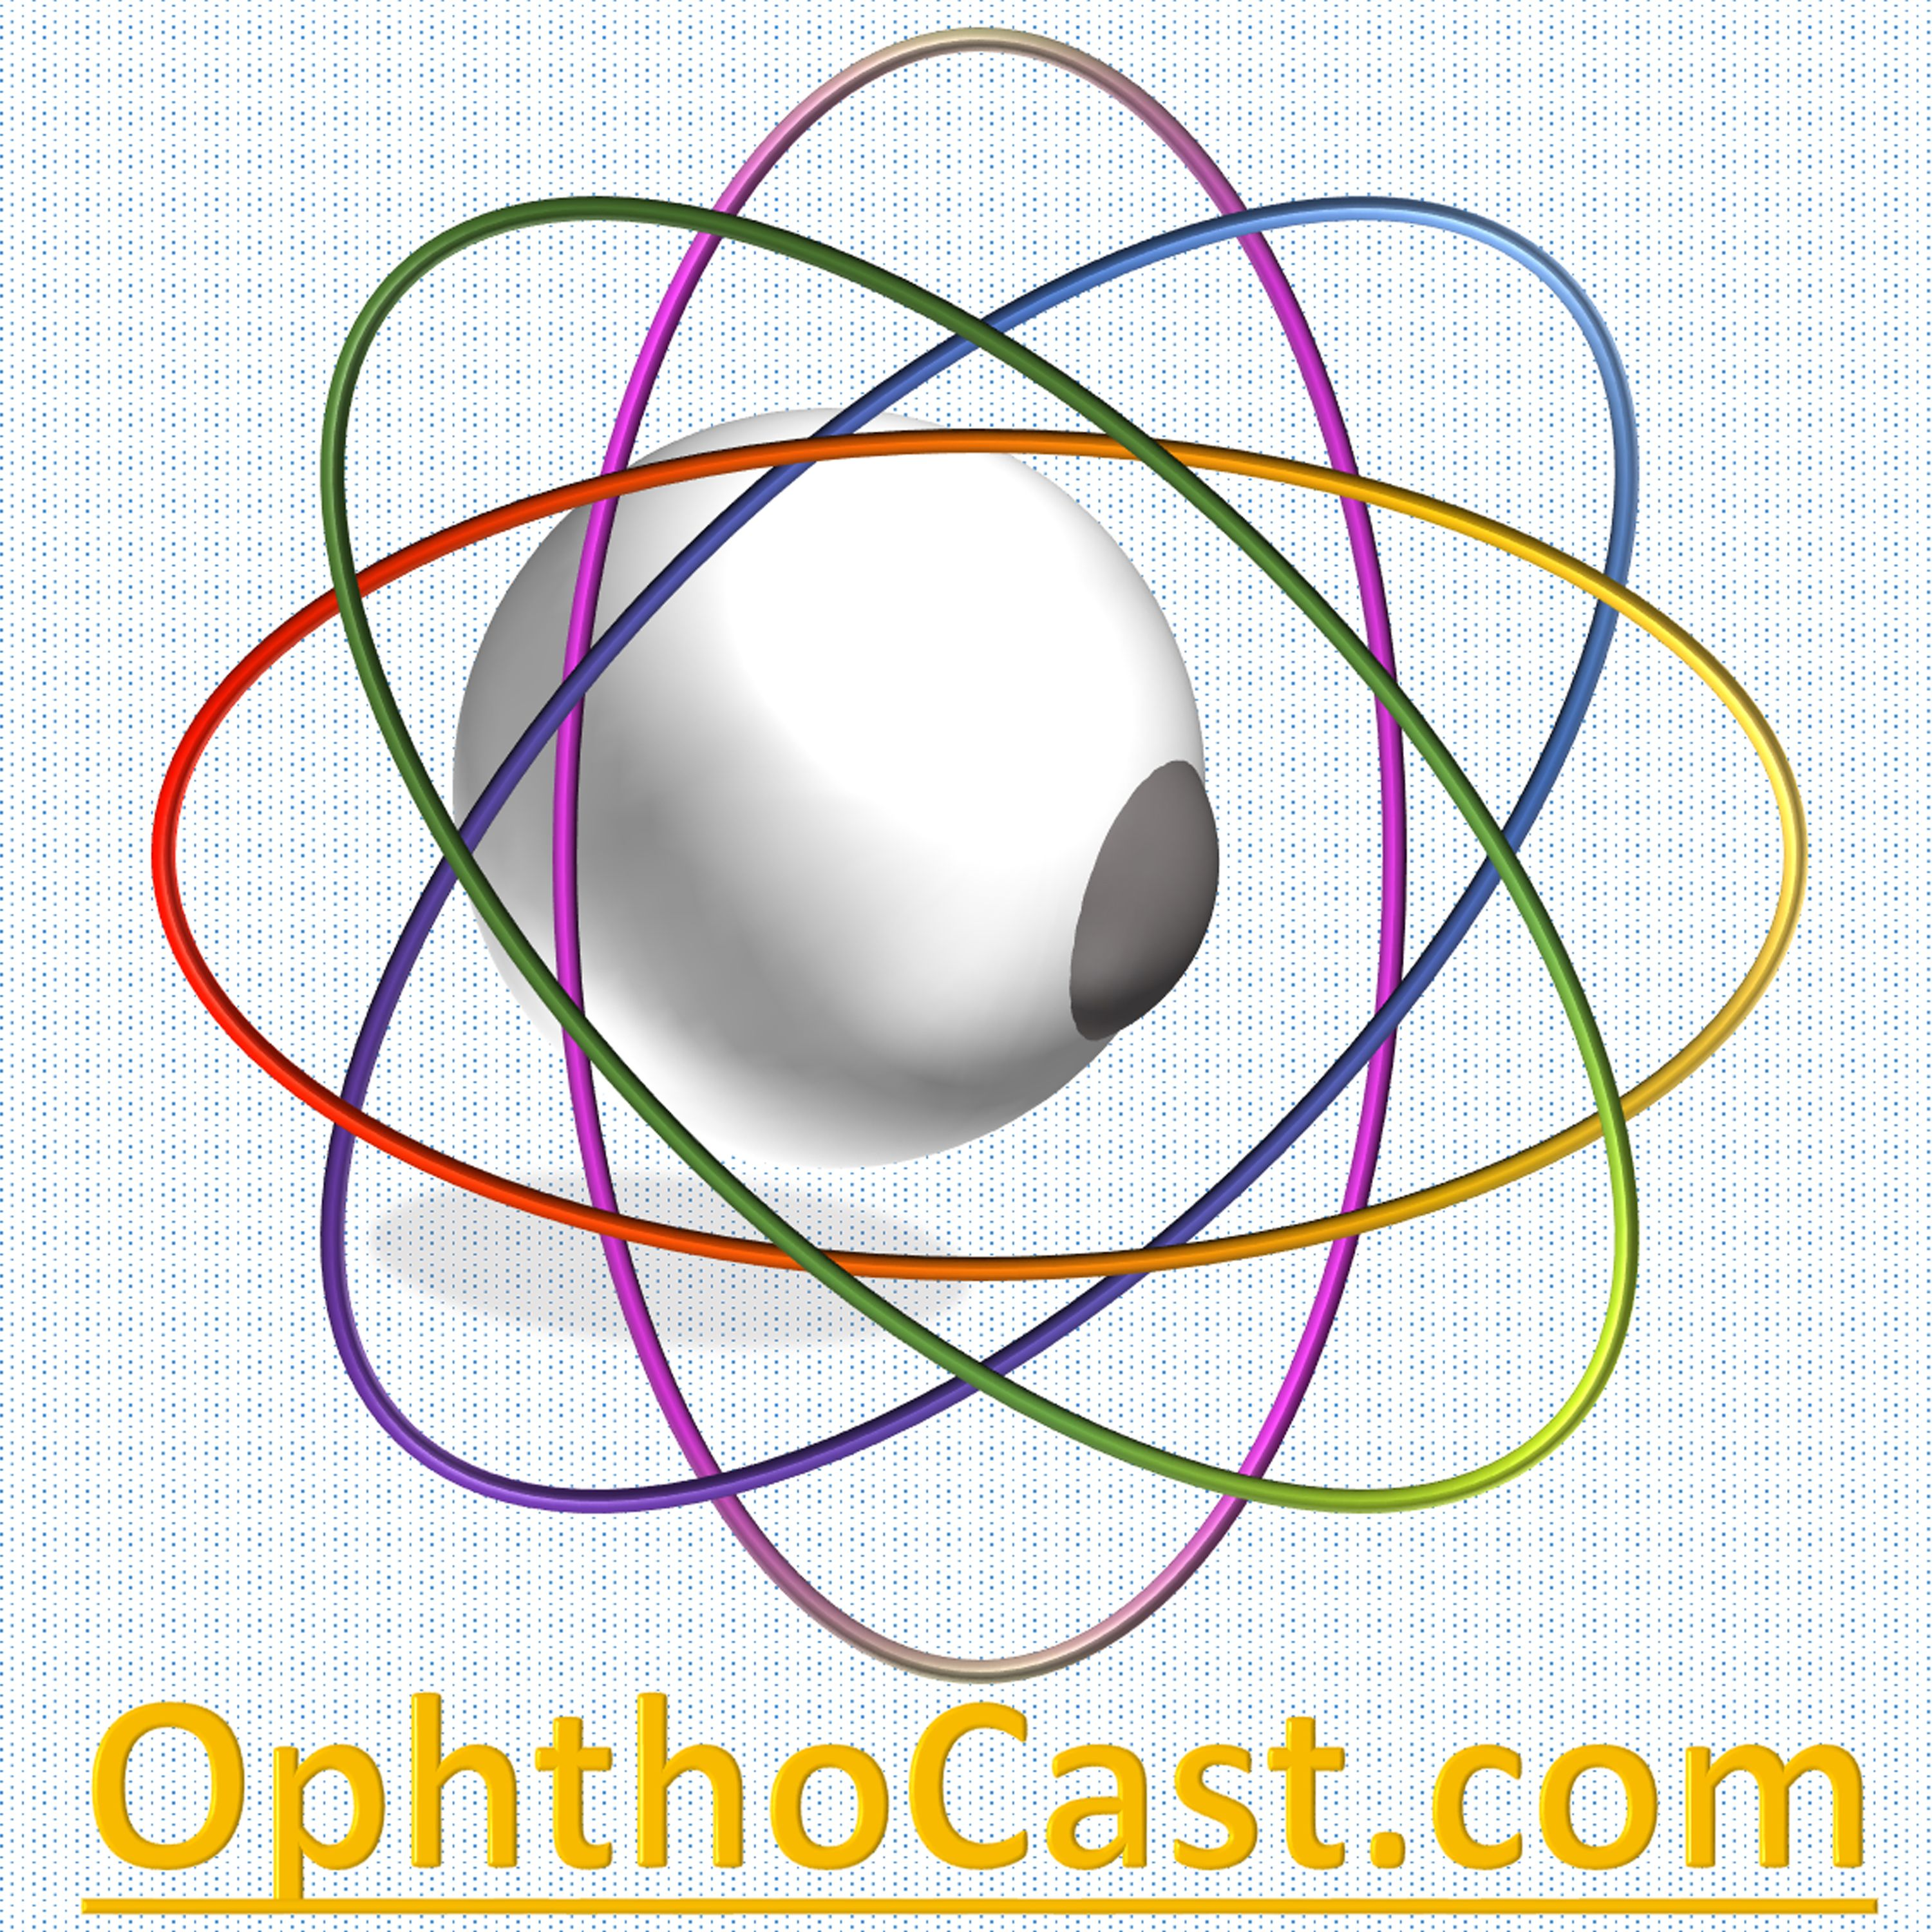 OphthoCast